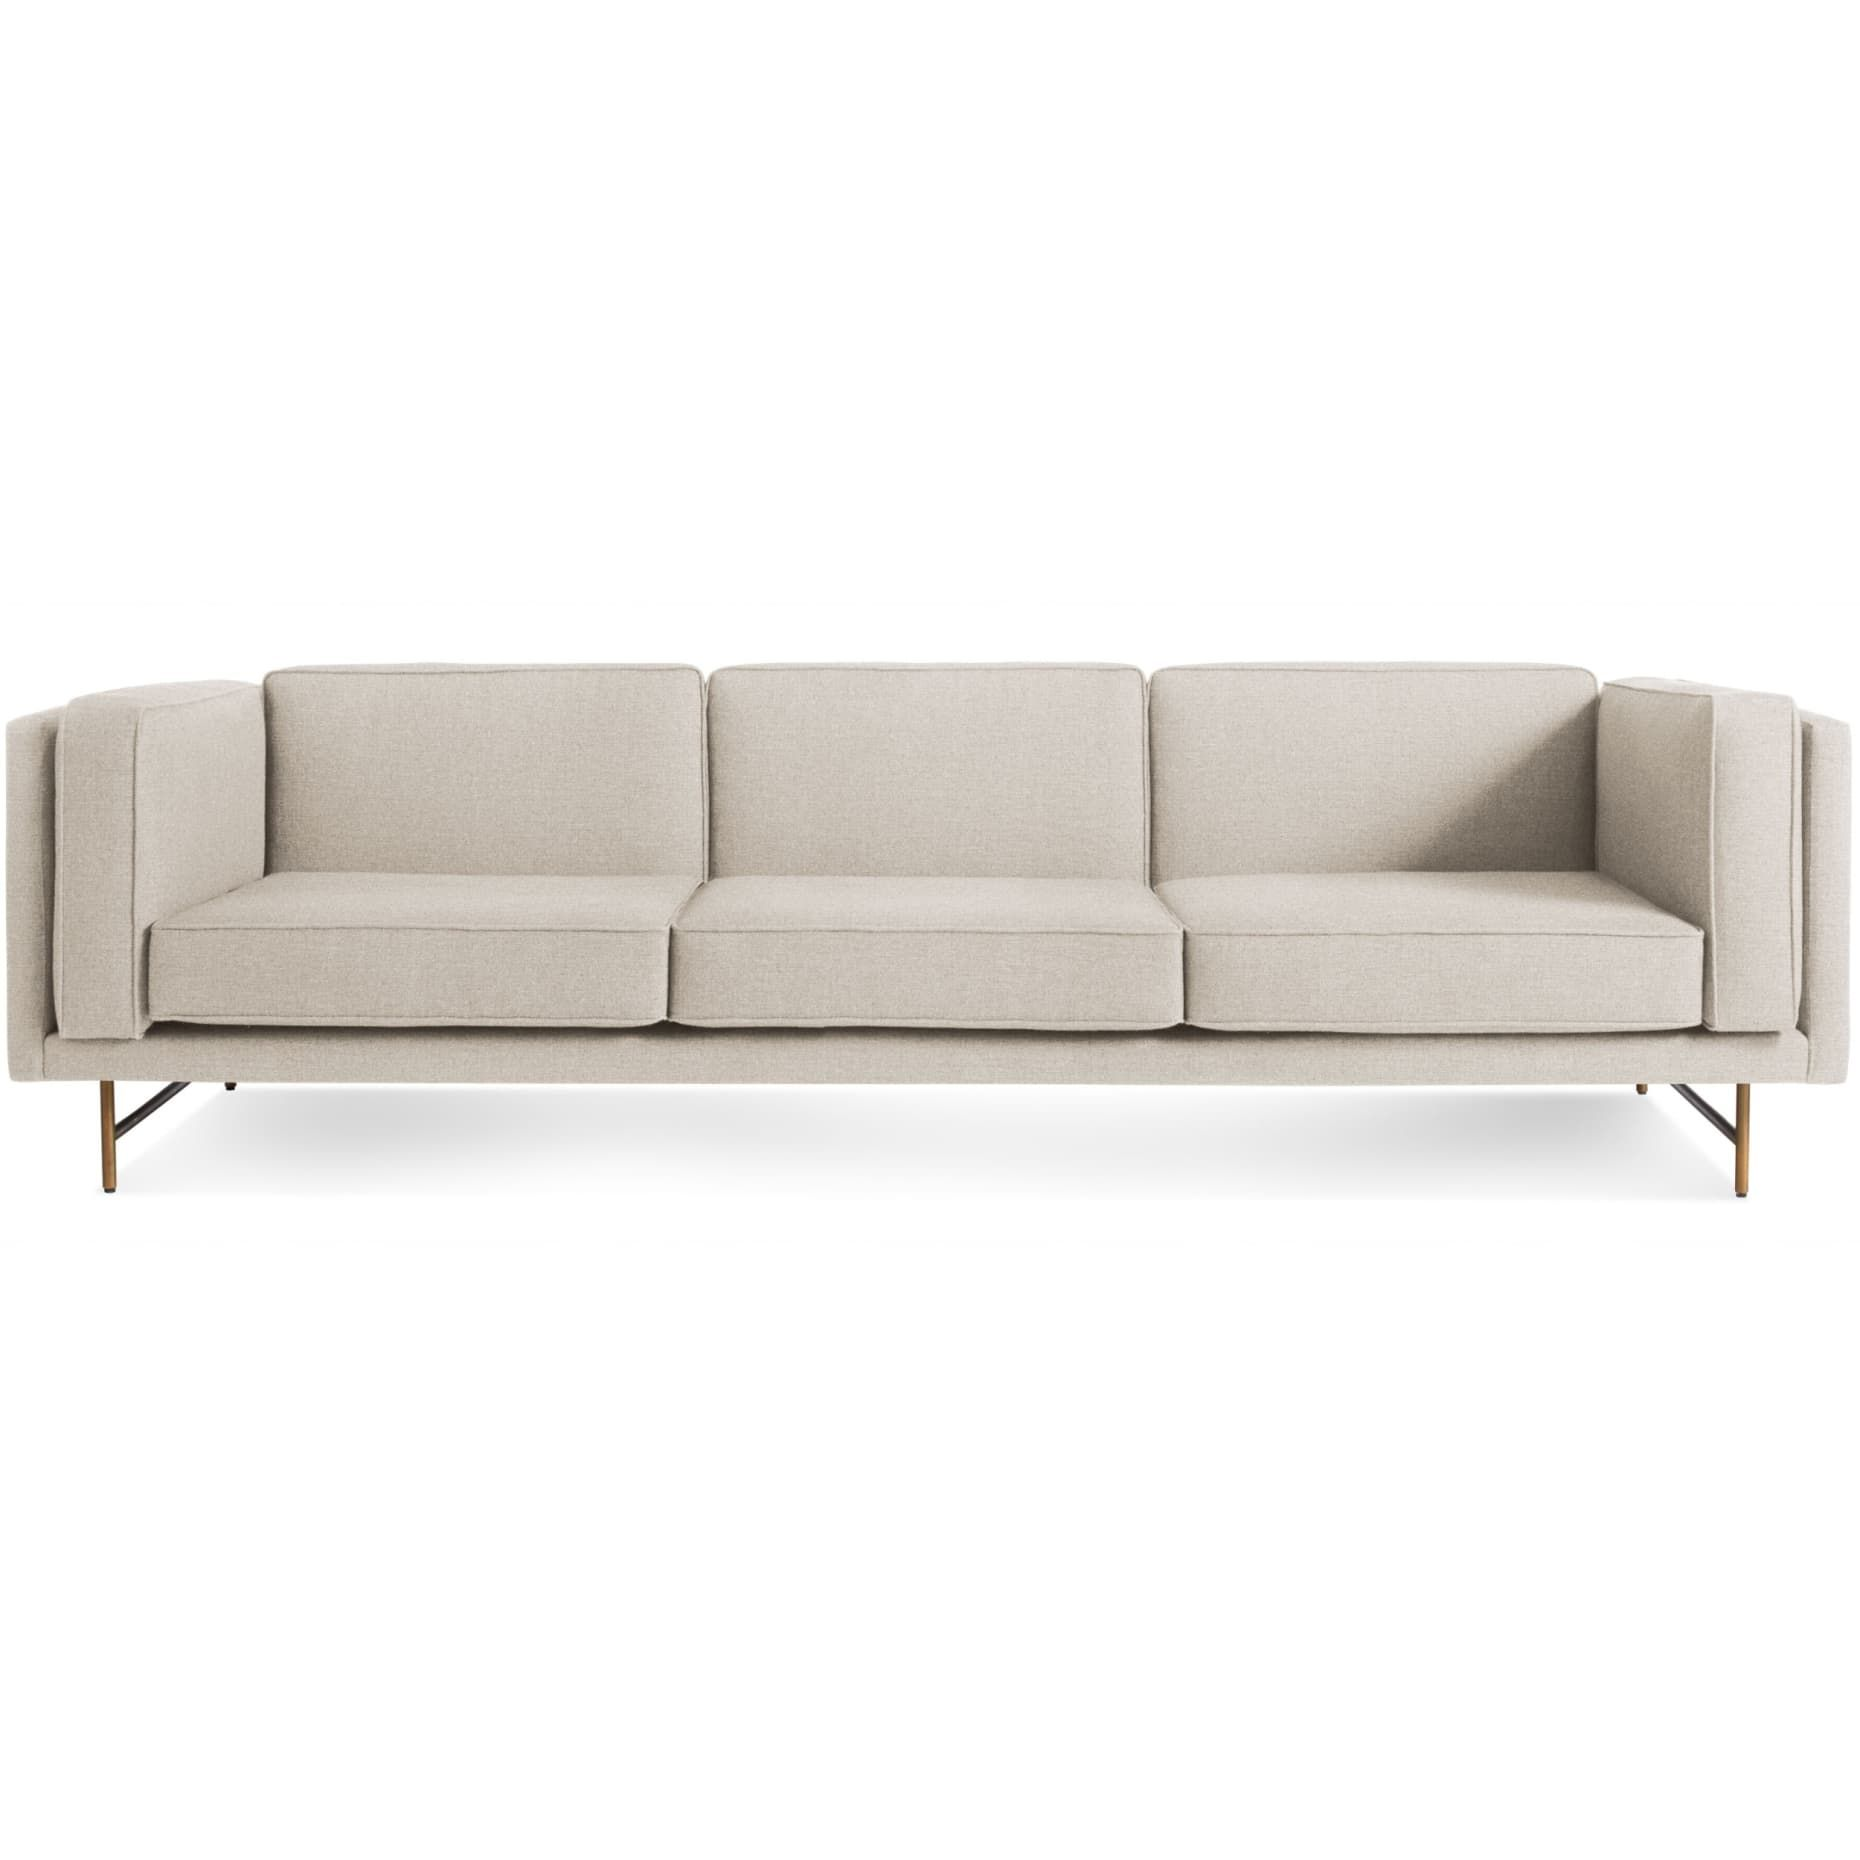 Bank 96 Low Profile Sofa Modern Sofa Sofa